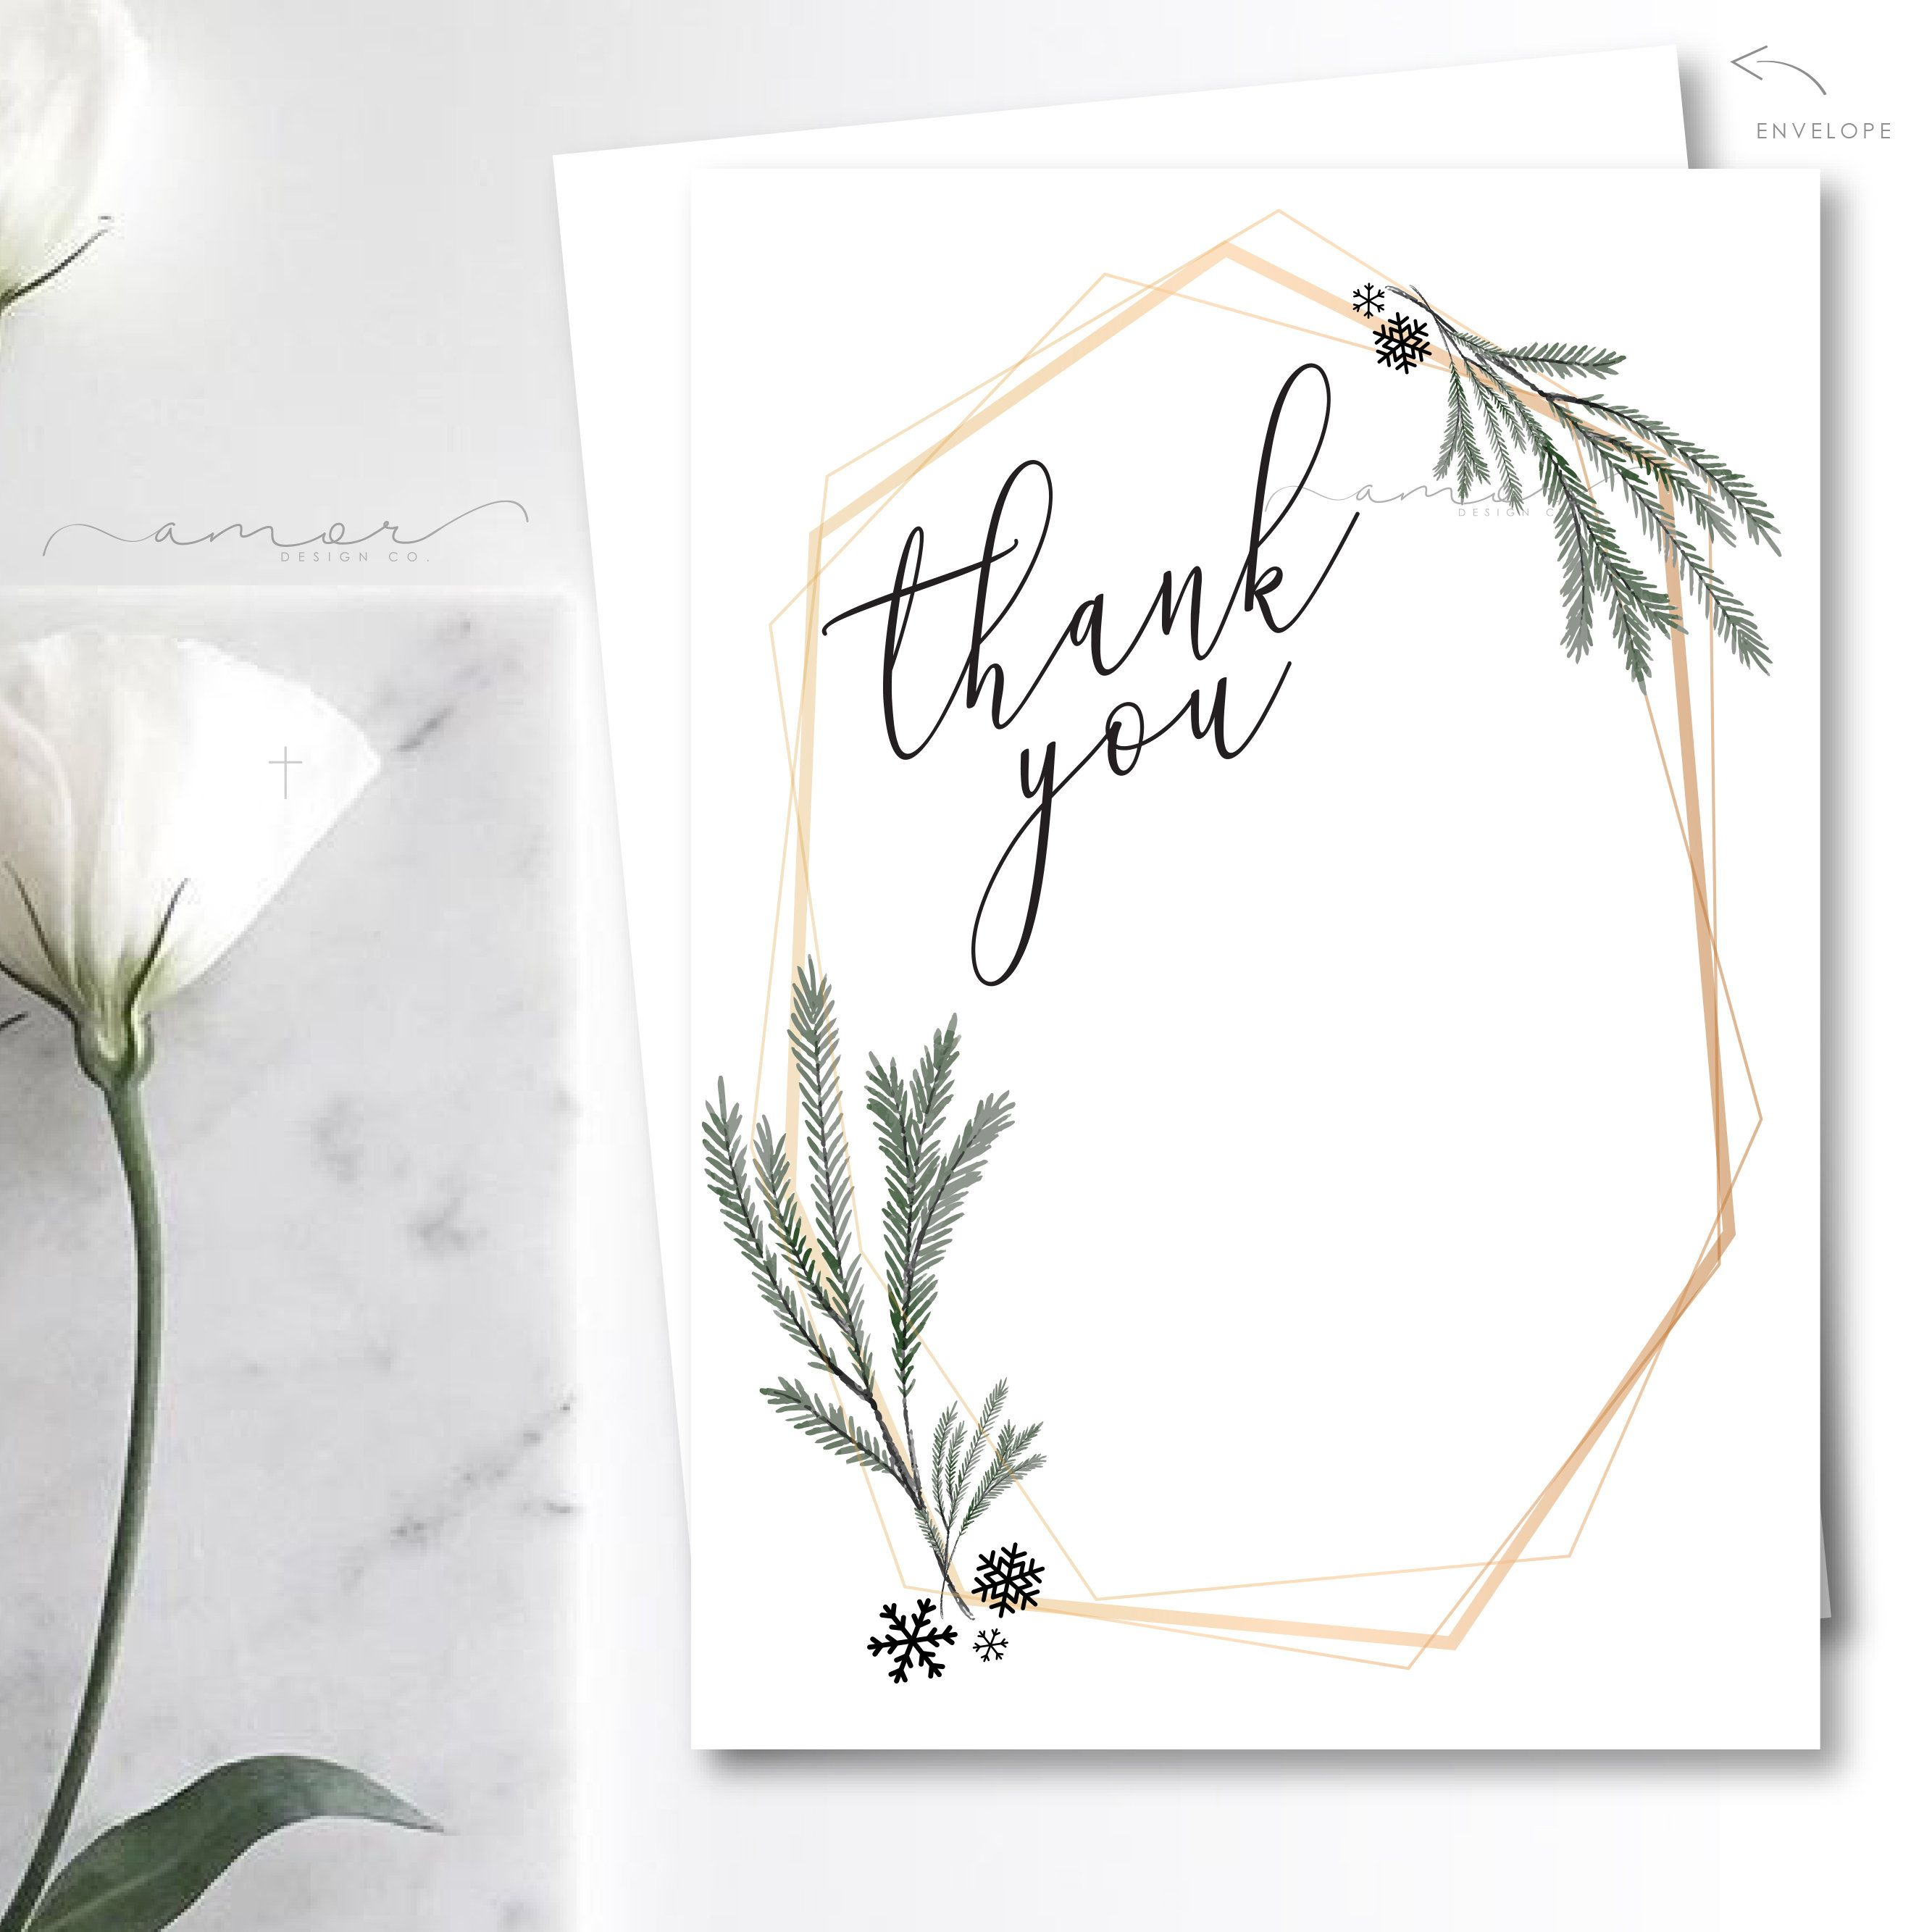 Modern Winter Thank You Cared, Winter Wonderland Baby Shower, Modern Pine Thank You, Minimalist Winter Thank You Card, Holiday Thank You #businessthankyoucards